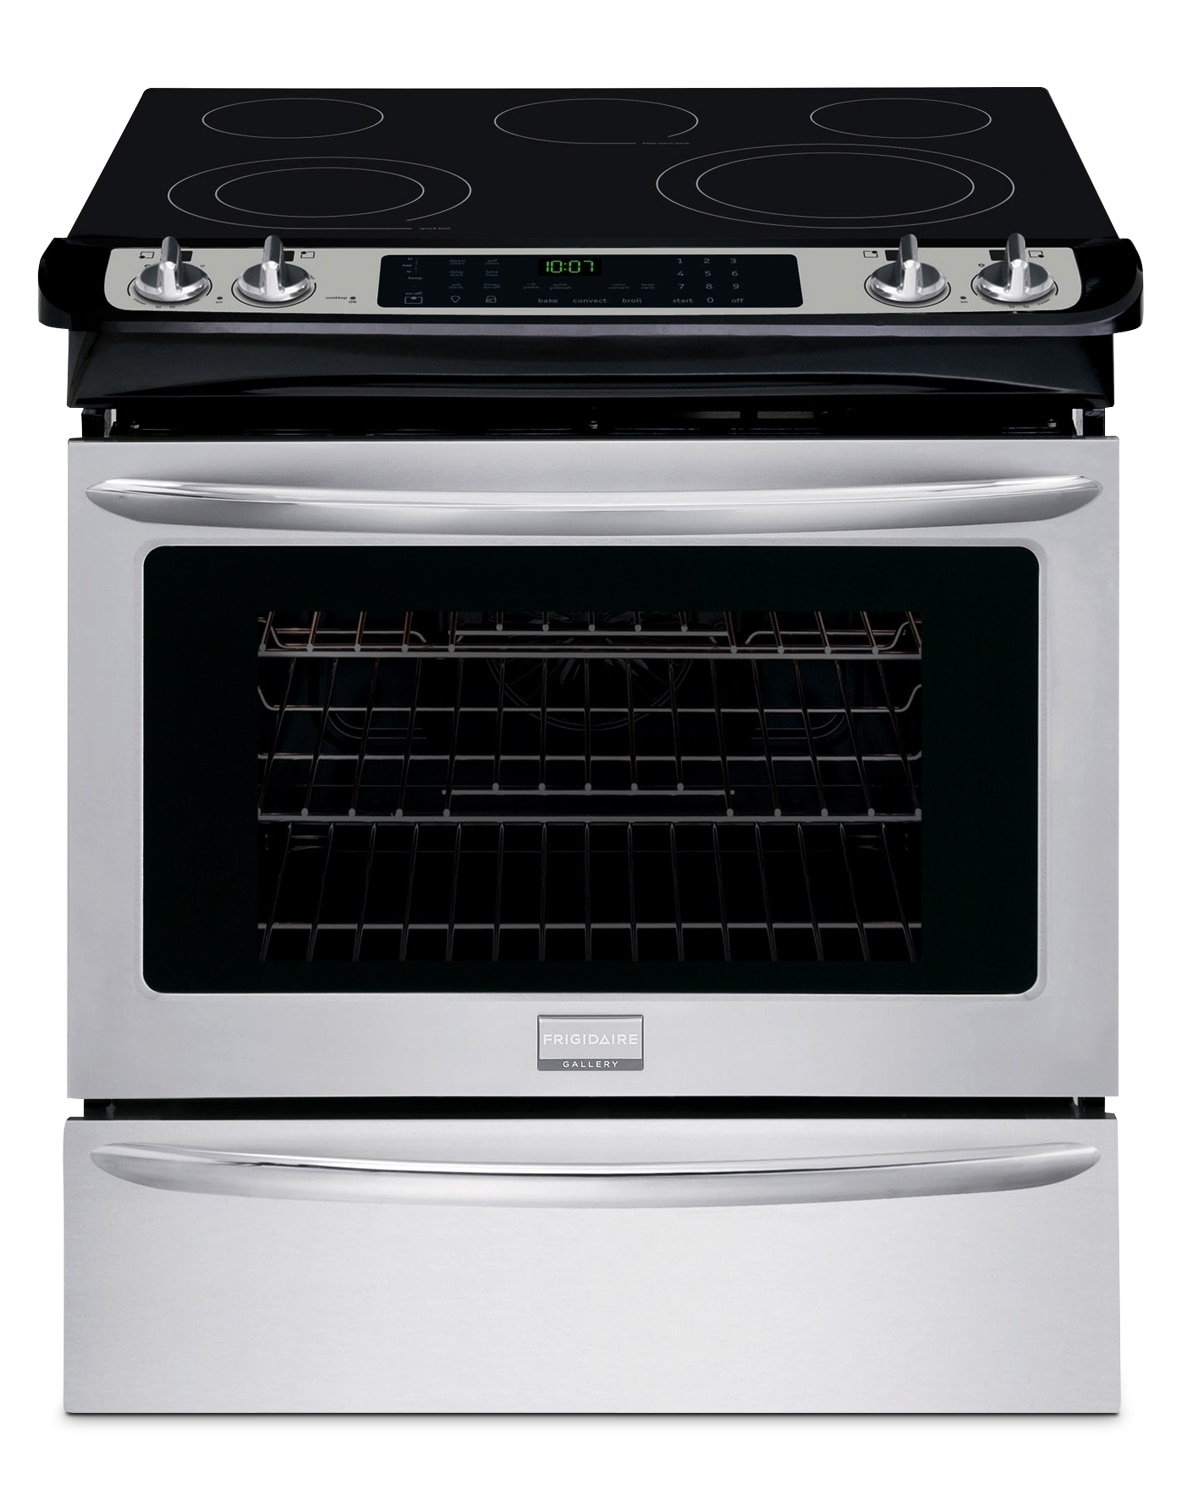 Cooking Products - Frigidaire Stainless Steel Slide-In Electric Range (4.6 Cu. Ft.) - 1606866